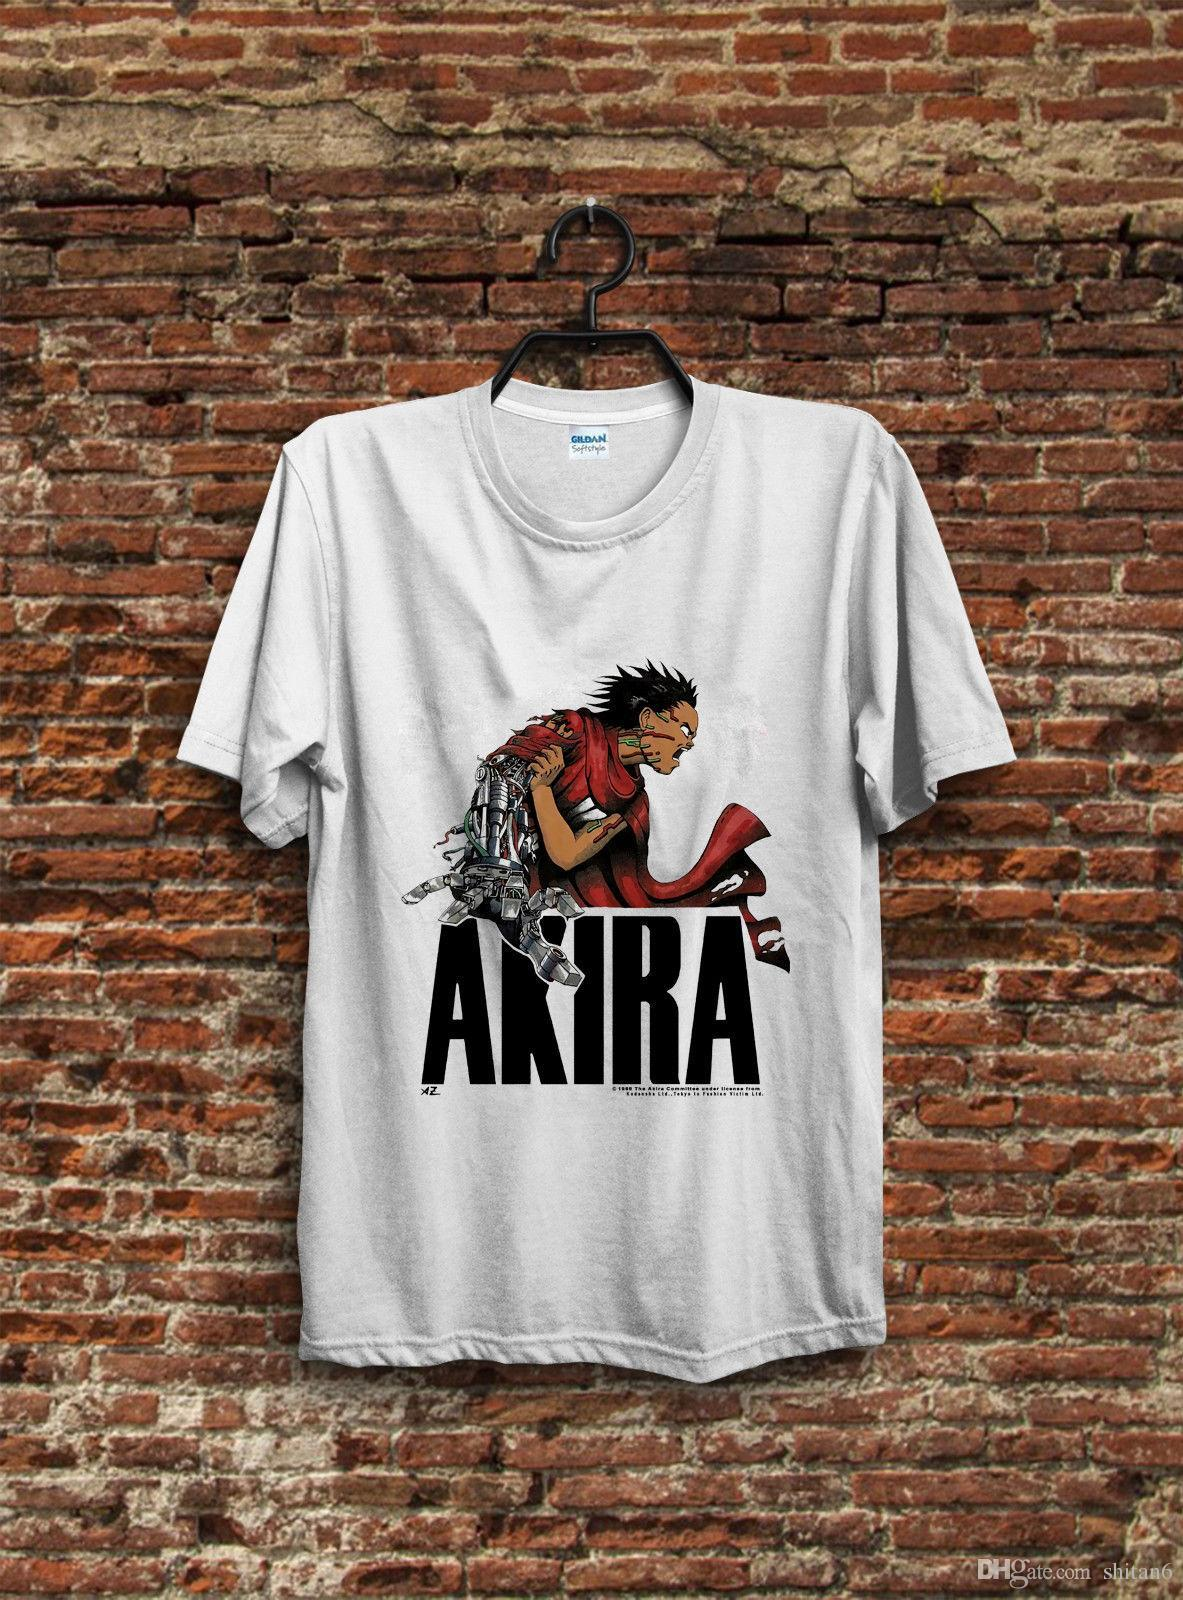 Vintage Akira T Shirt Tetsuo Shima 1988 Fashion Victim Anime Ghost In The Shell 2018 Short Sleeve Cotton T Shirts Man Clothing Canada 2020 From Shitan6 Cad 16 59 Dhgate Canada